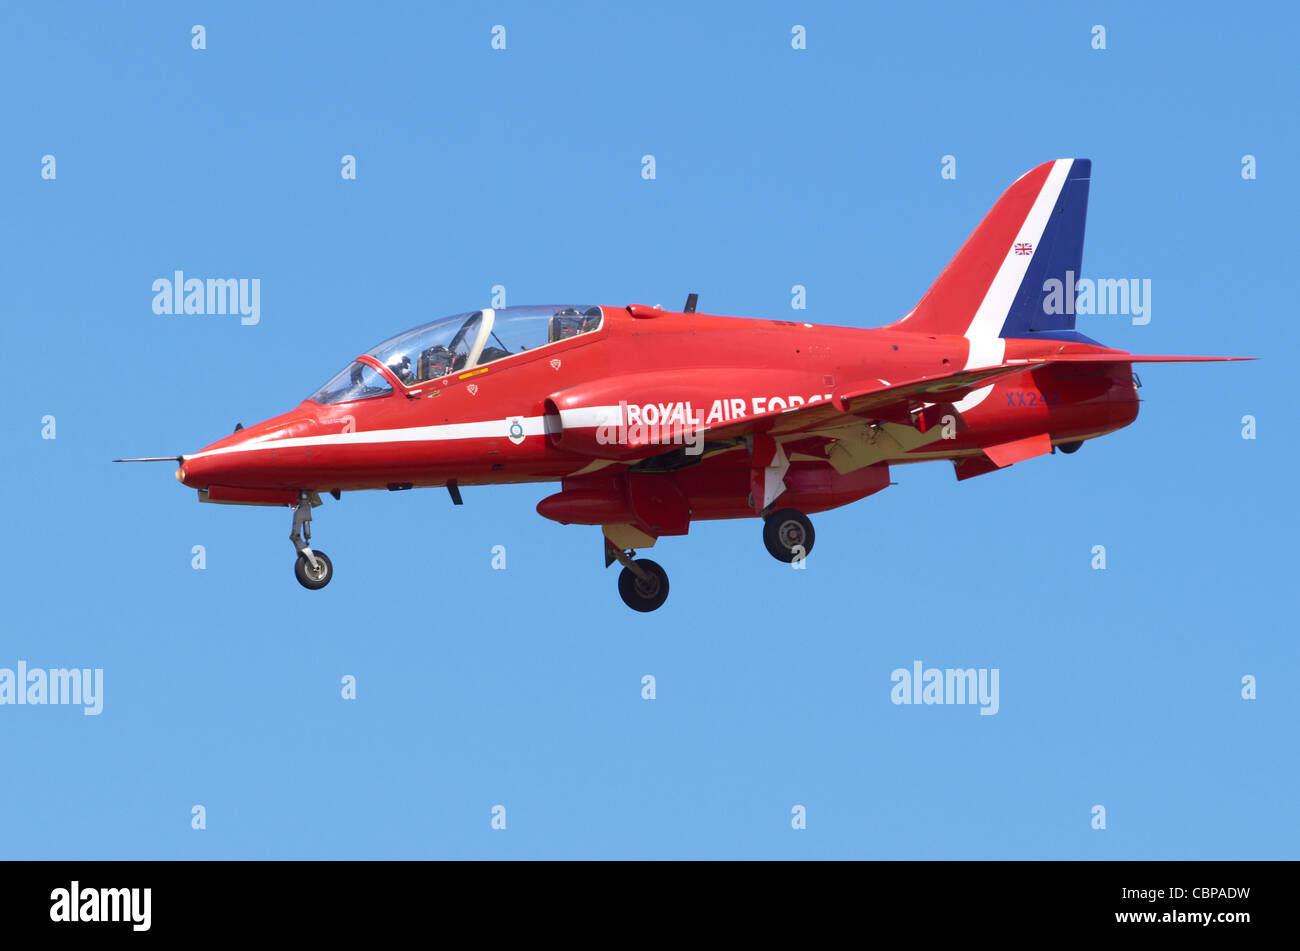 Red Arrows Hawk T1 aircraft on approach for landing at RAF Fairford, UK - Stock Image